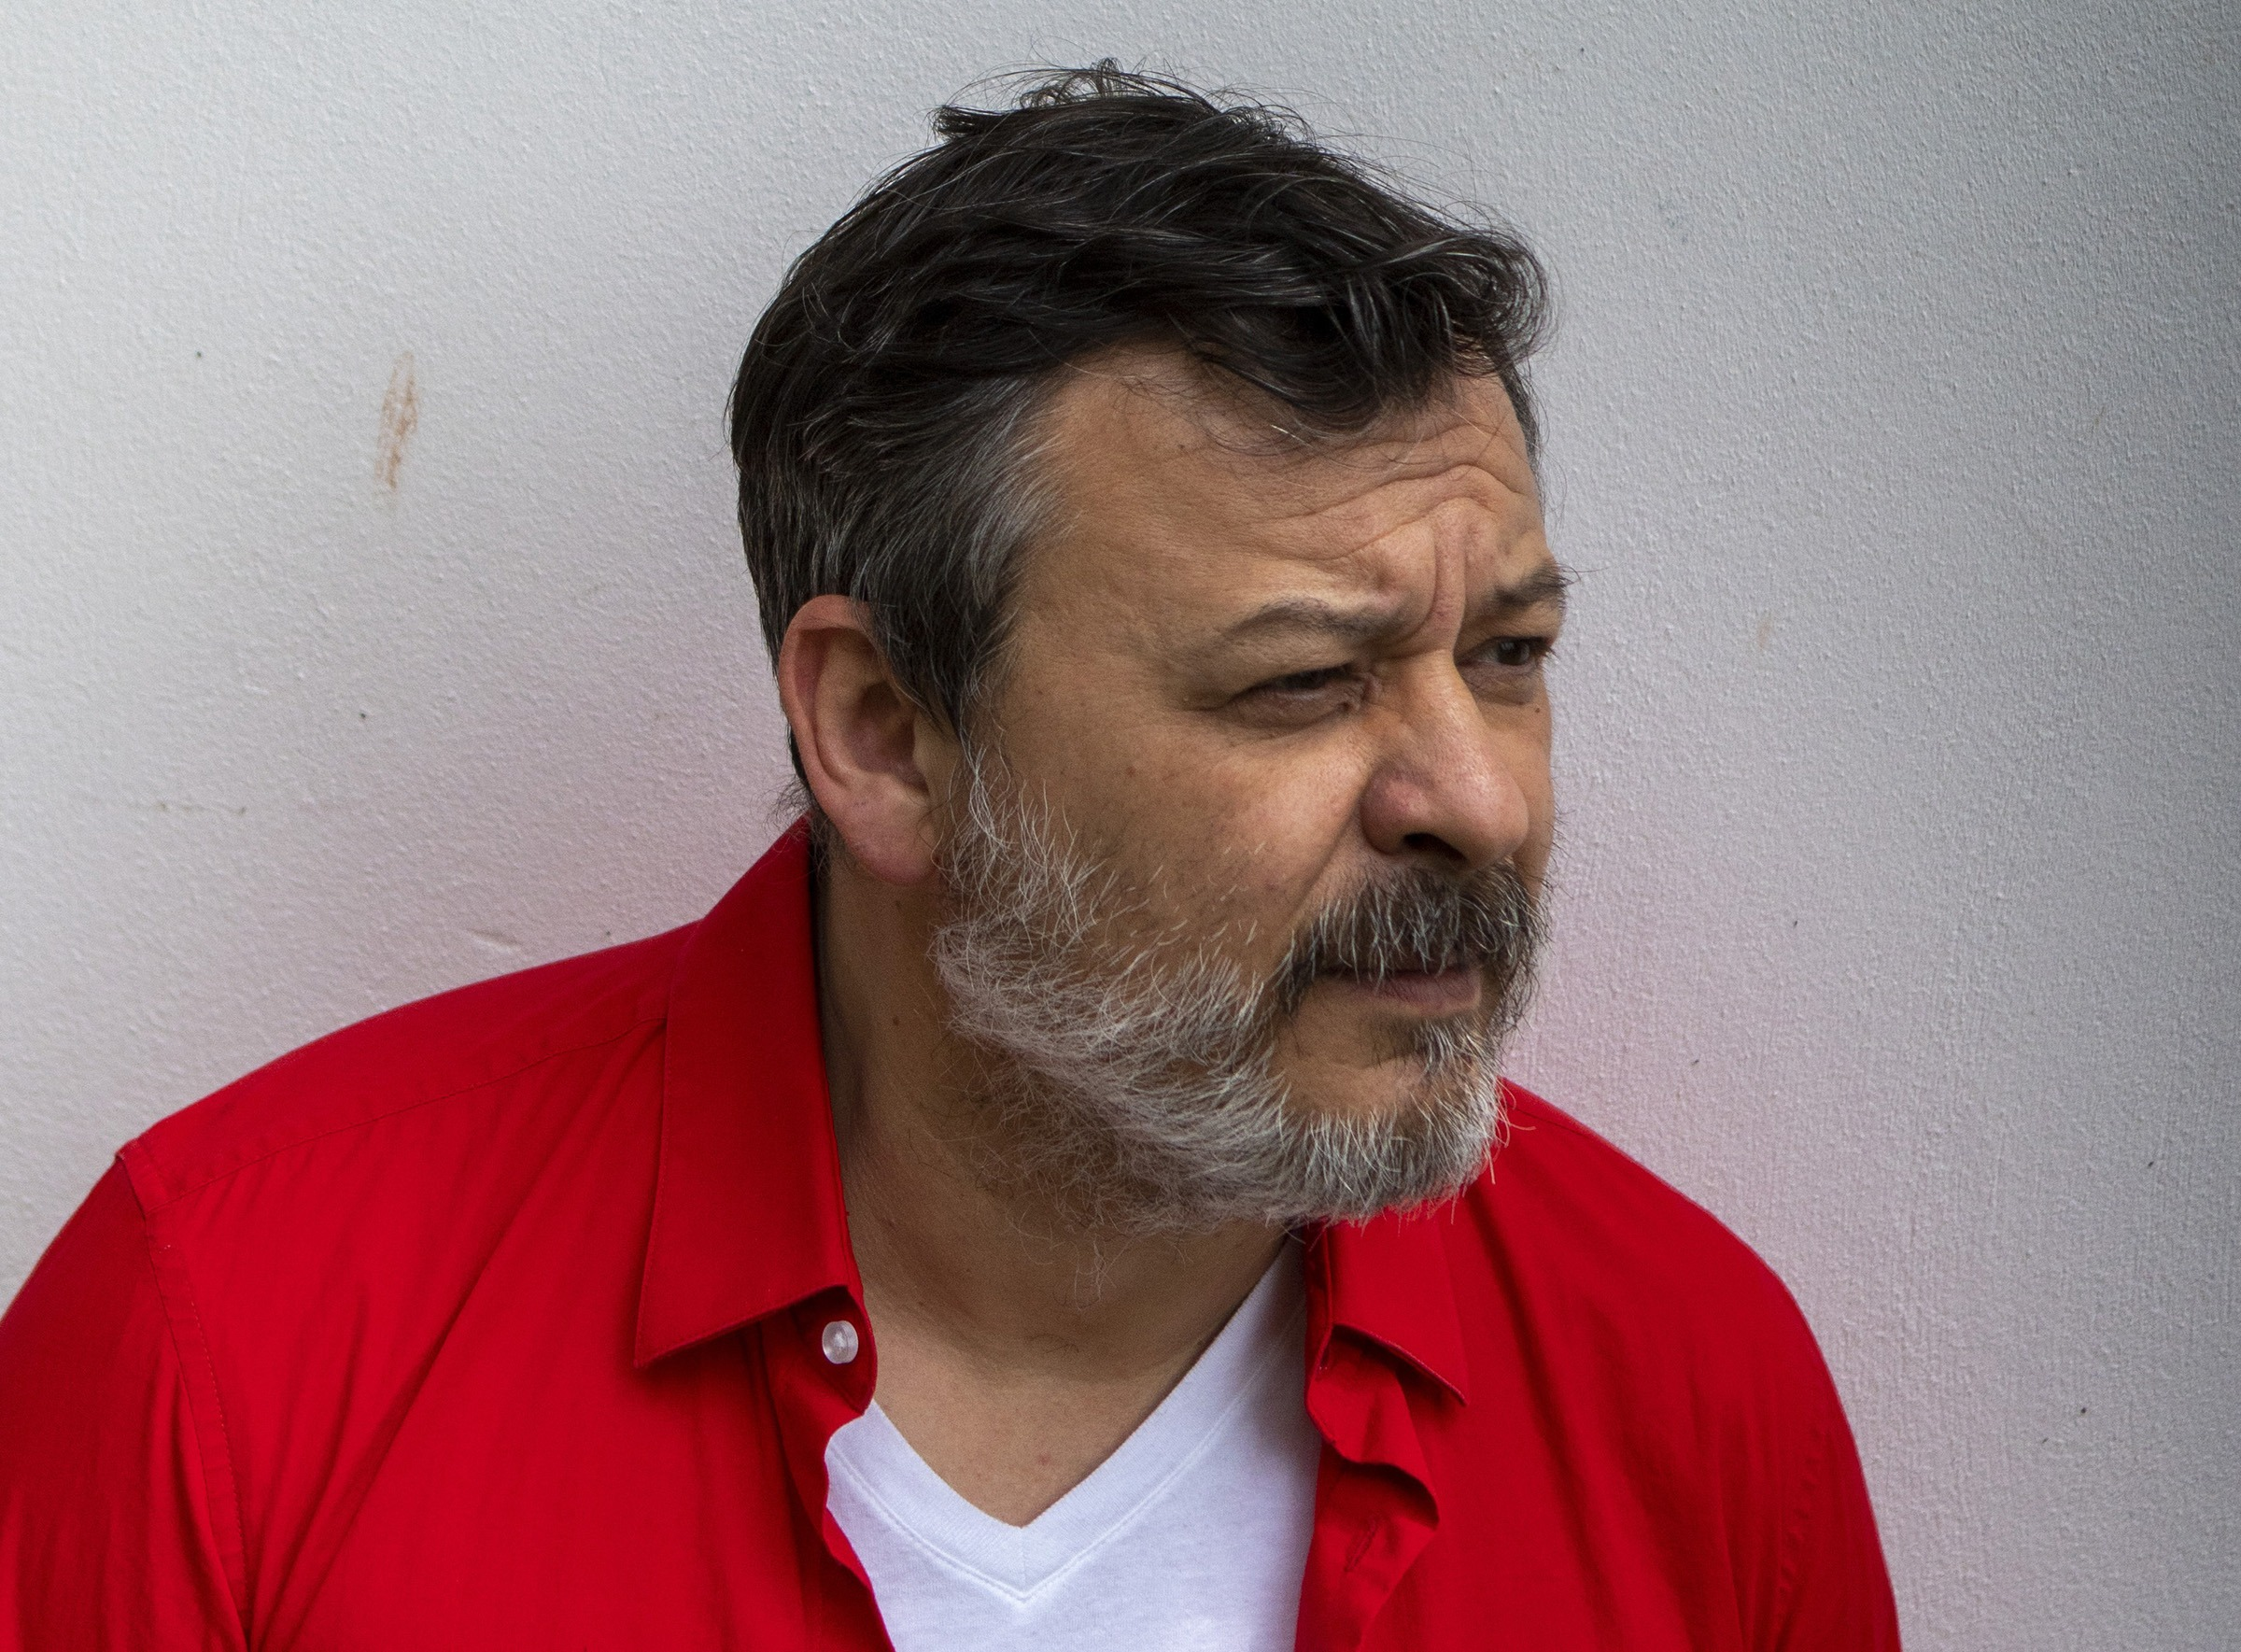 JAMES DEAN BRADFIELD shares two new songs 'There'll Come A War' & 'Seeking The Room With The Three Windows' - Listen Now